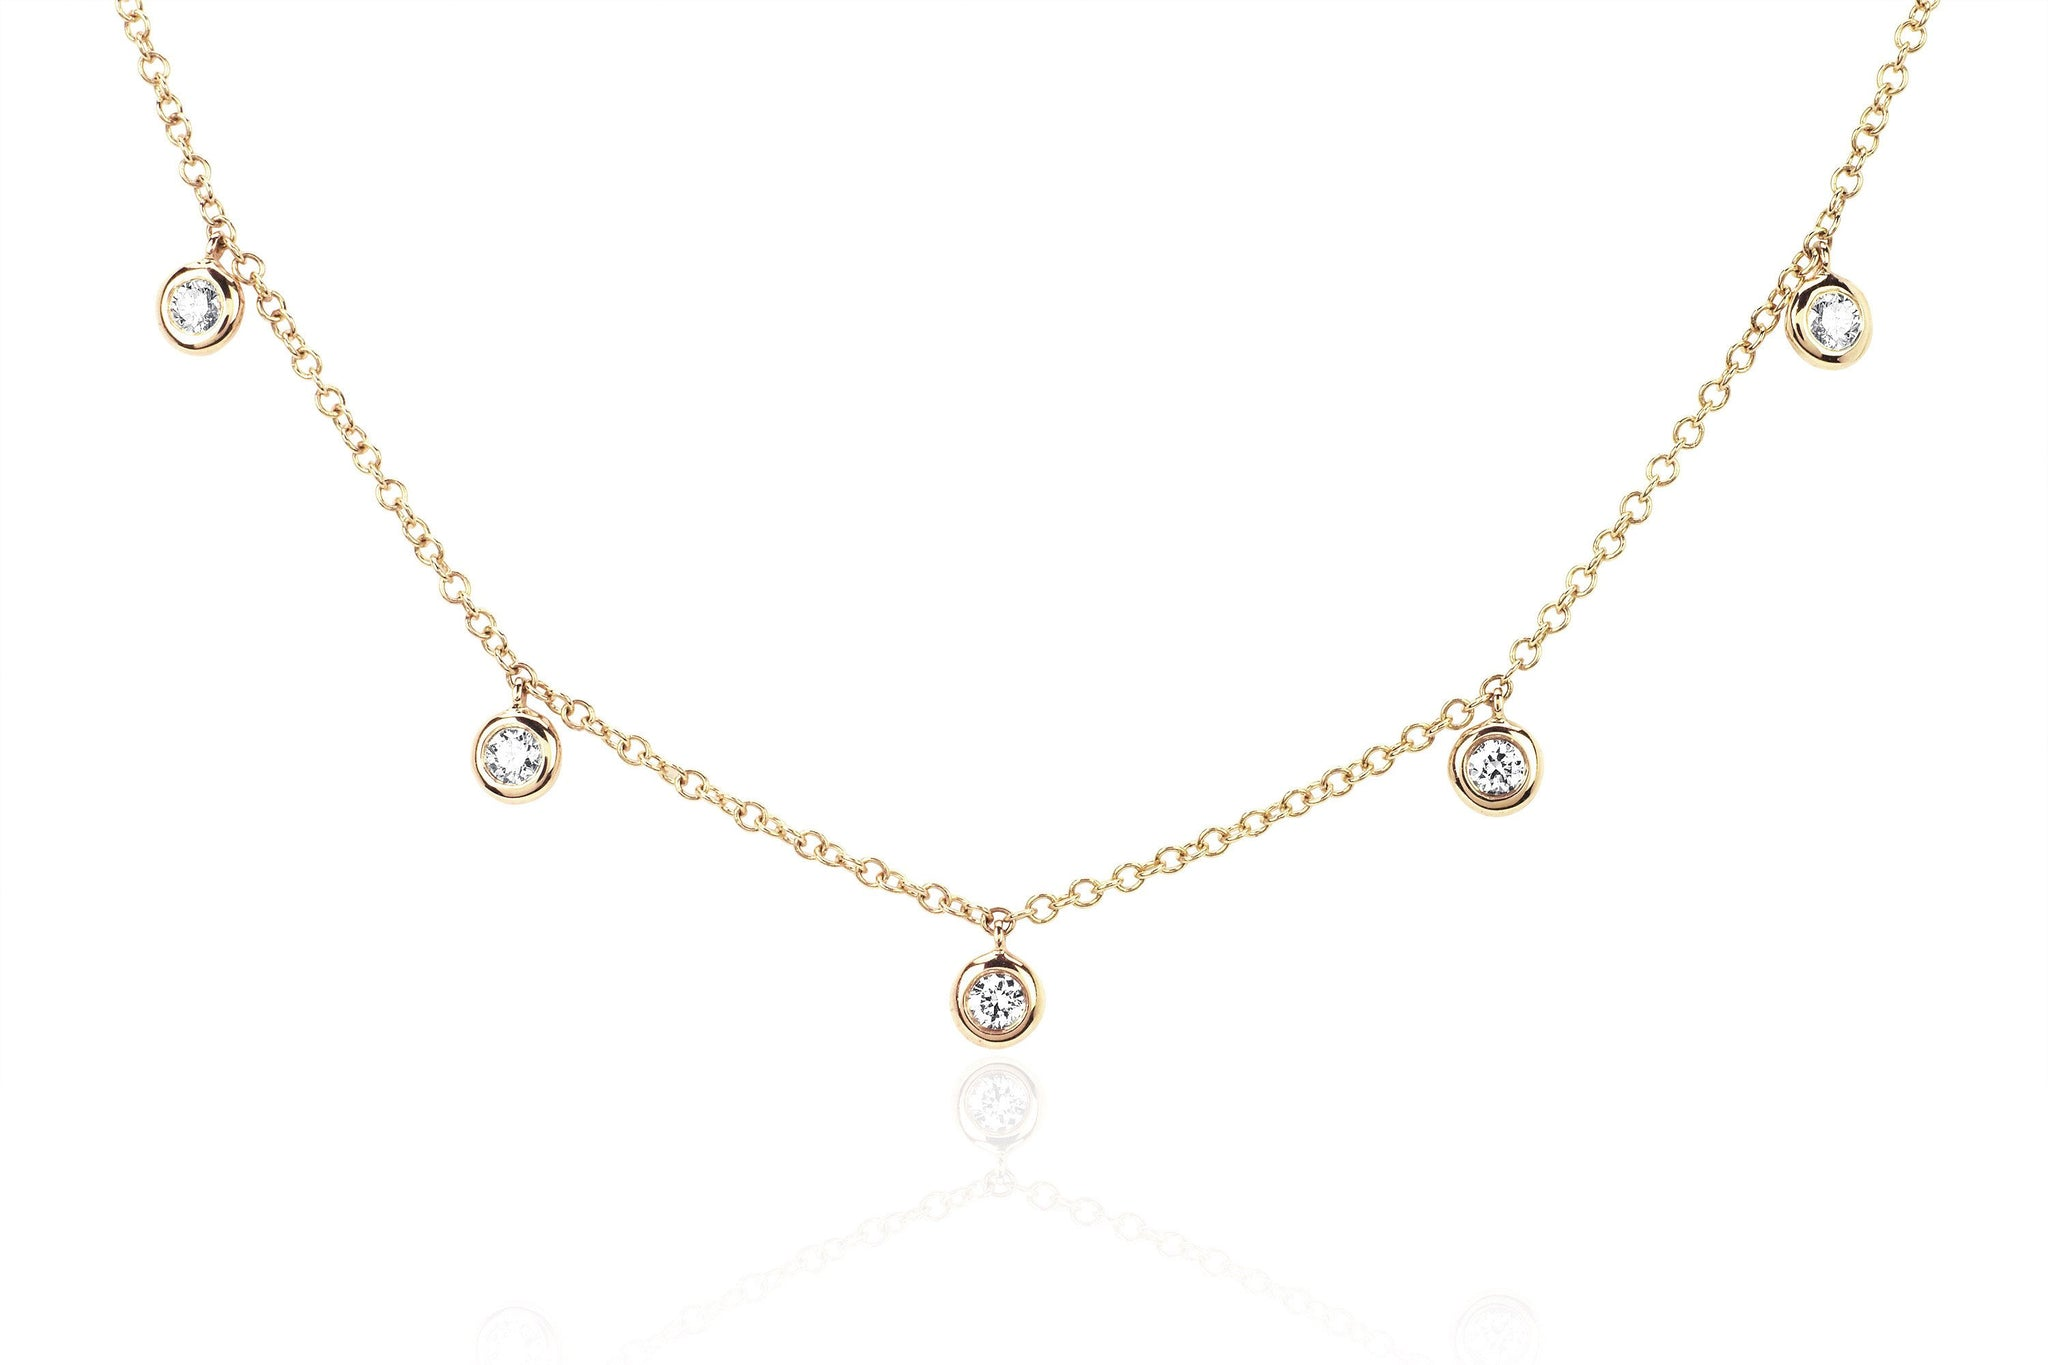 com inches jewelry box bezel set white cz chain amazon necklace round cubic gold dp zirconia carat